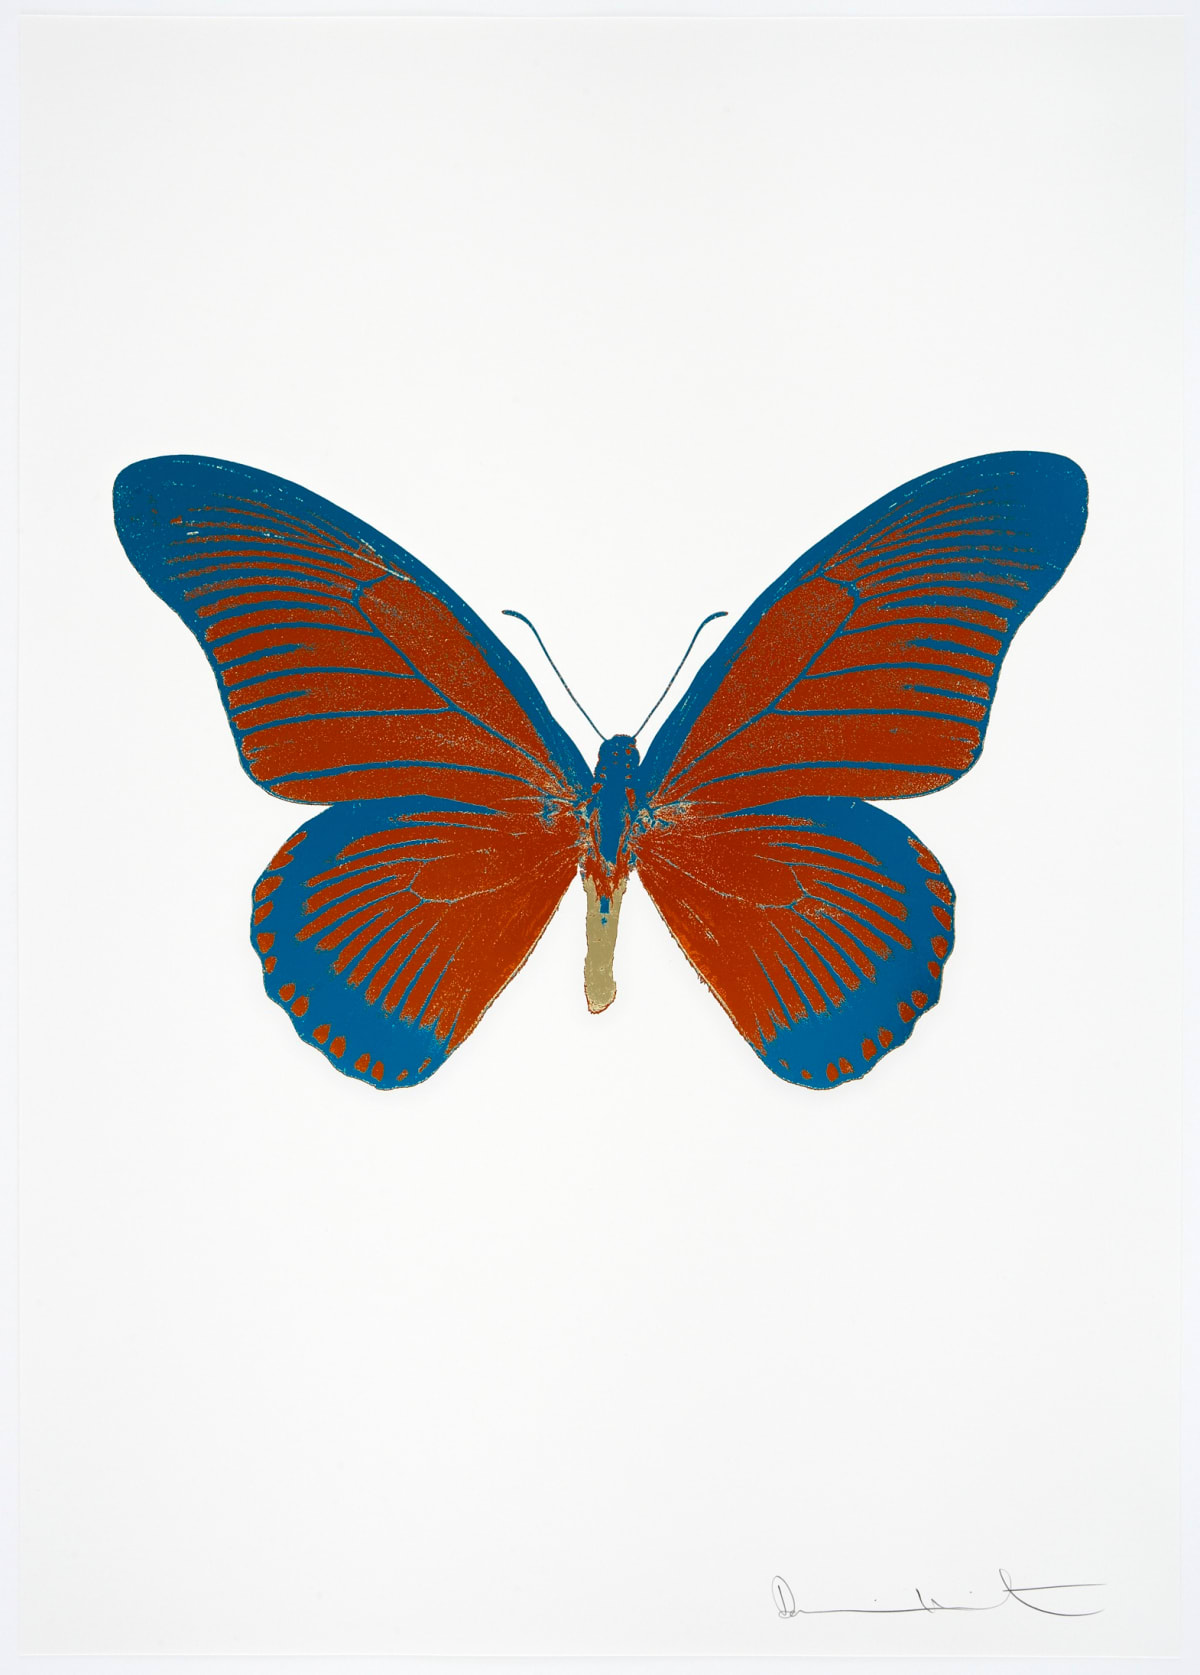 Damien Hirst The Souls IV - Prairie Copper/Turquoise/Cool Gold Damien Hirst butterfly foil print for sale Damien Hirst print for sale , 2010 3 colour foil block on 300gsm Arches 88 archival paper. Signed and numbered. Published by Paul Stolper and Other Criteria 72 x 51cm OC8052 / 1418-75 Edition of 15